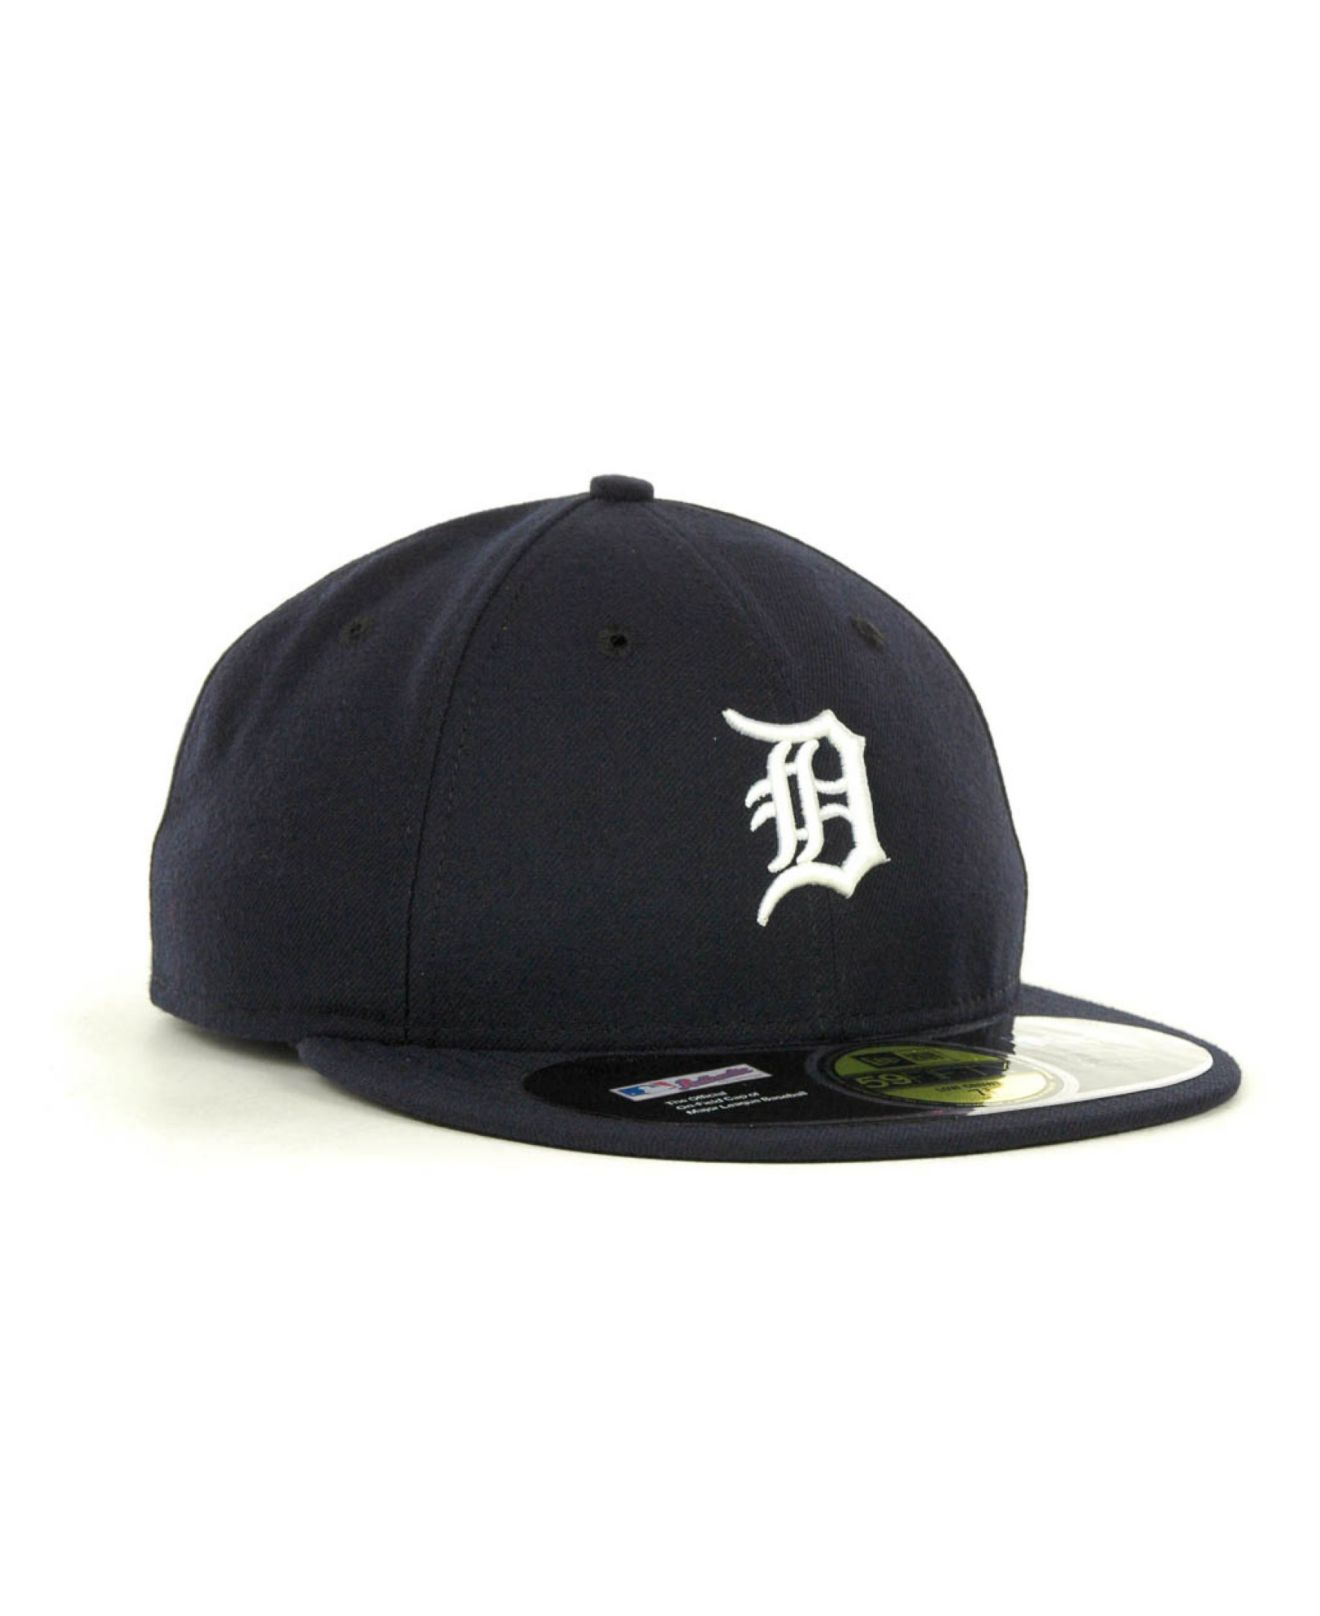 21f41 1137d cheap lyst ktz detroit tigers low crown ac performance 59fifty  cap in e989f 1b065 aliexpress nike ... 45d083fc2d0